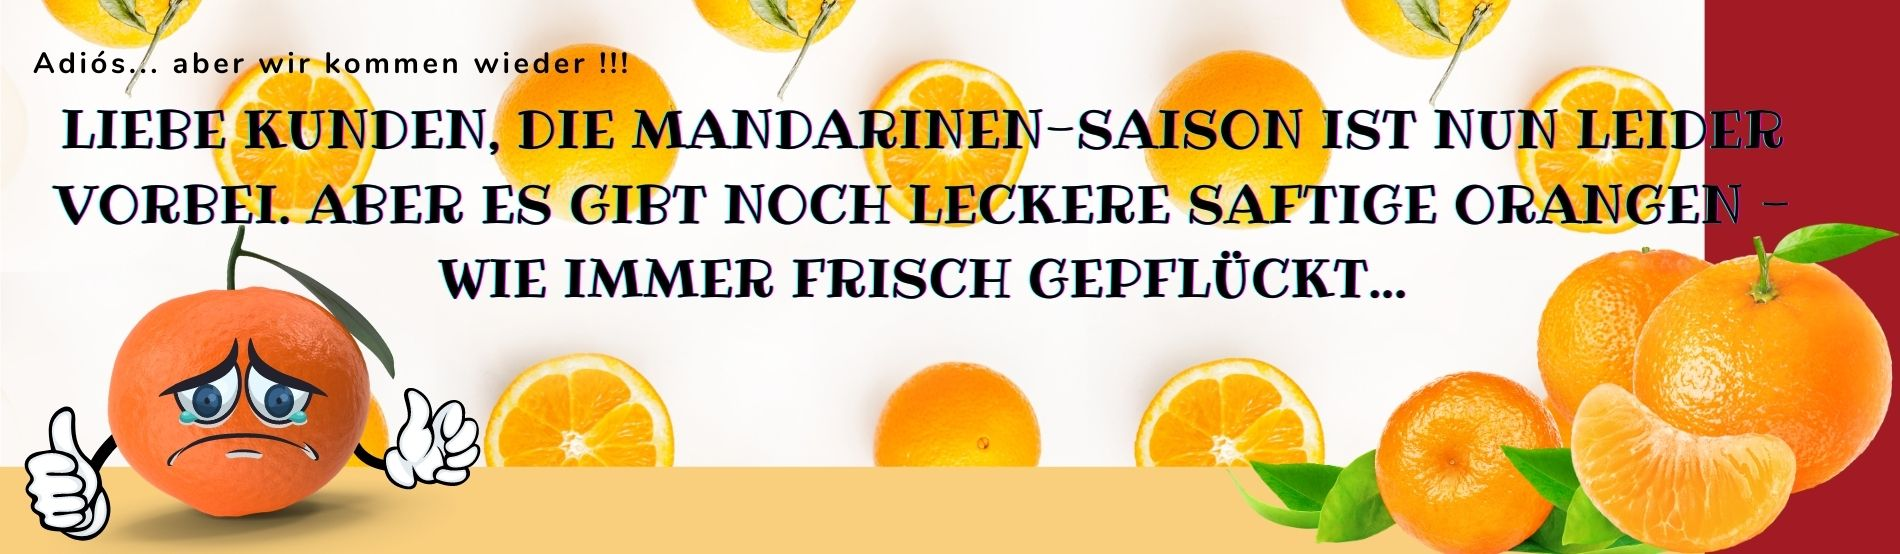 Mandarinen Saisonende